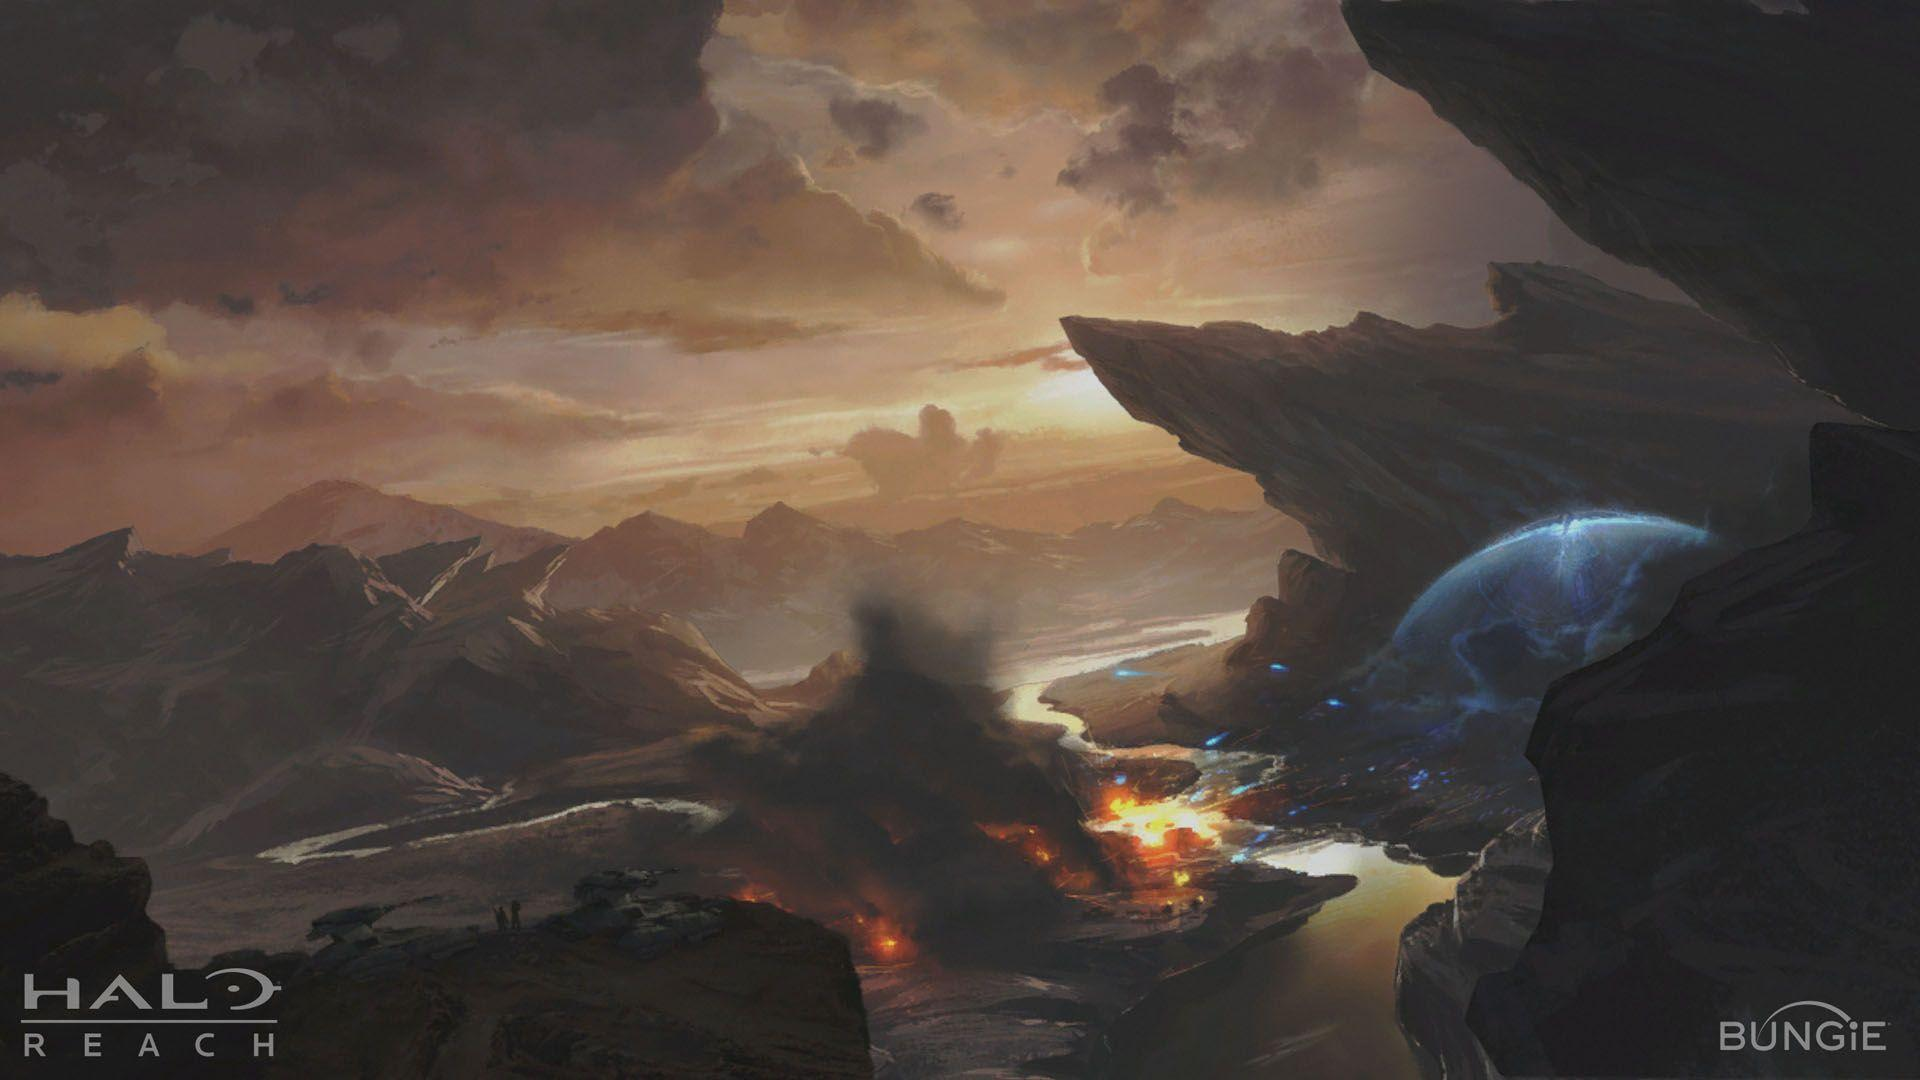 Halo 3 backgrounds wallpaper cave - Halo 5 screensaver ...